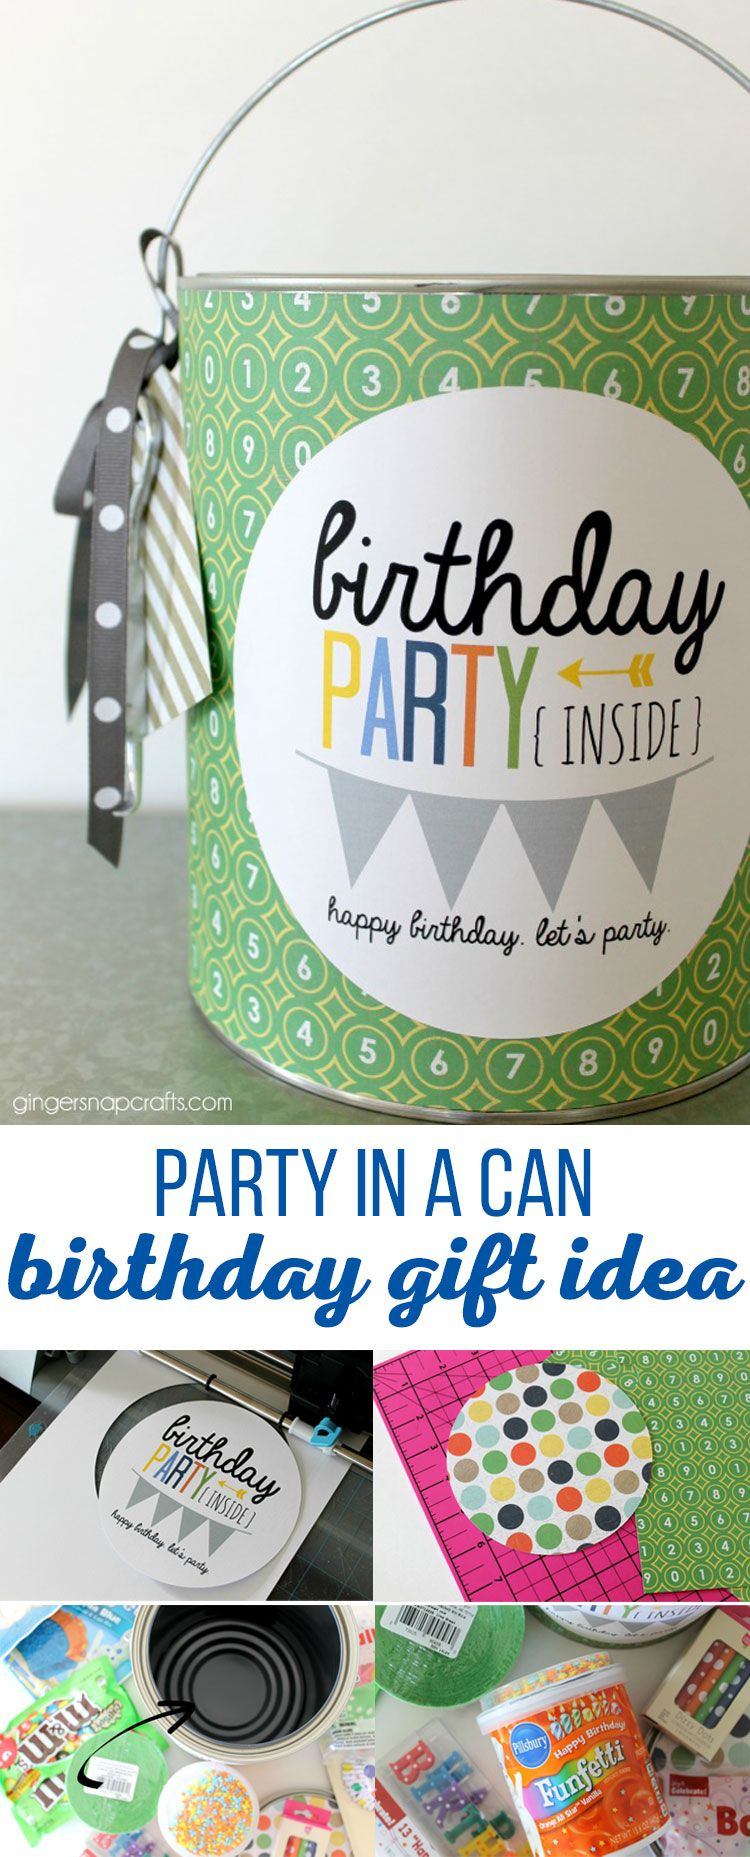 Party In A Can Birthday Gift Idea Is The Perfect For Anyone Living Away From Home Send Them